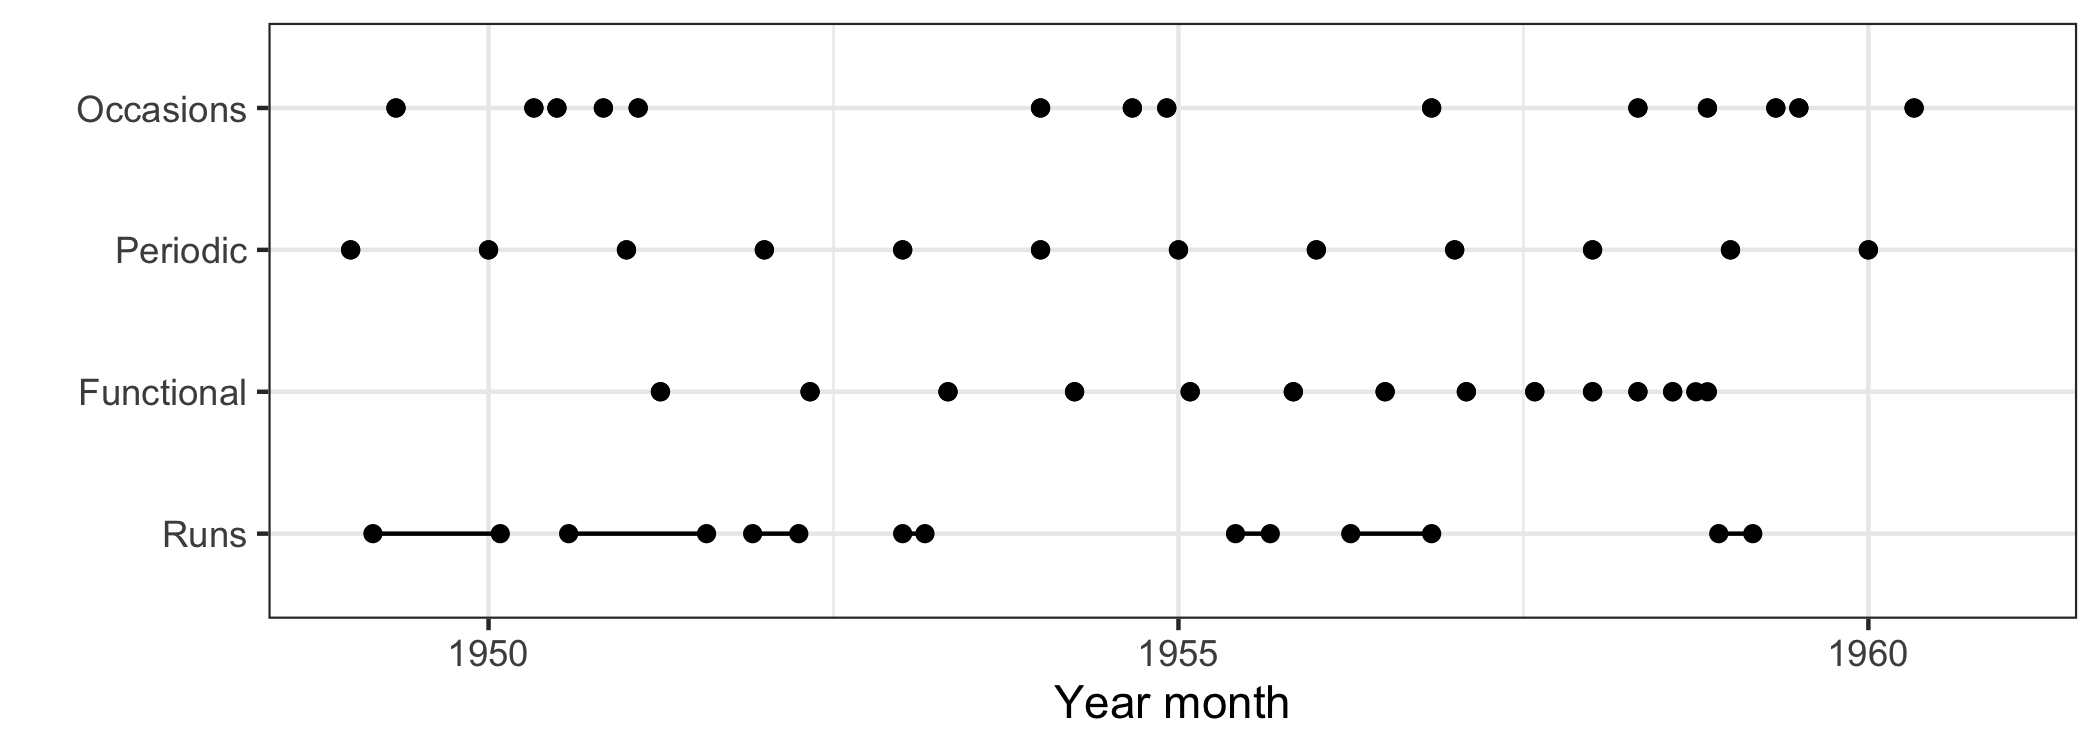 The range plot gives an exclusive focus on missing data over time, a graphical realization of the RLE <NA>. The dot indicates a single missing point, and a line range suggests the missings at runs. It is easier to compare and contrast the locations and run lengths of missings across series.